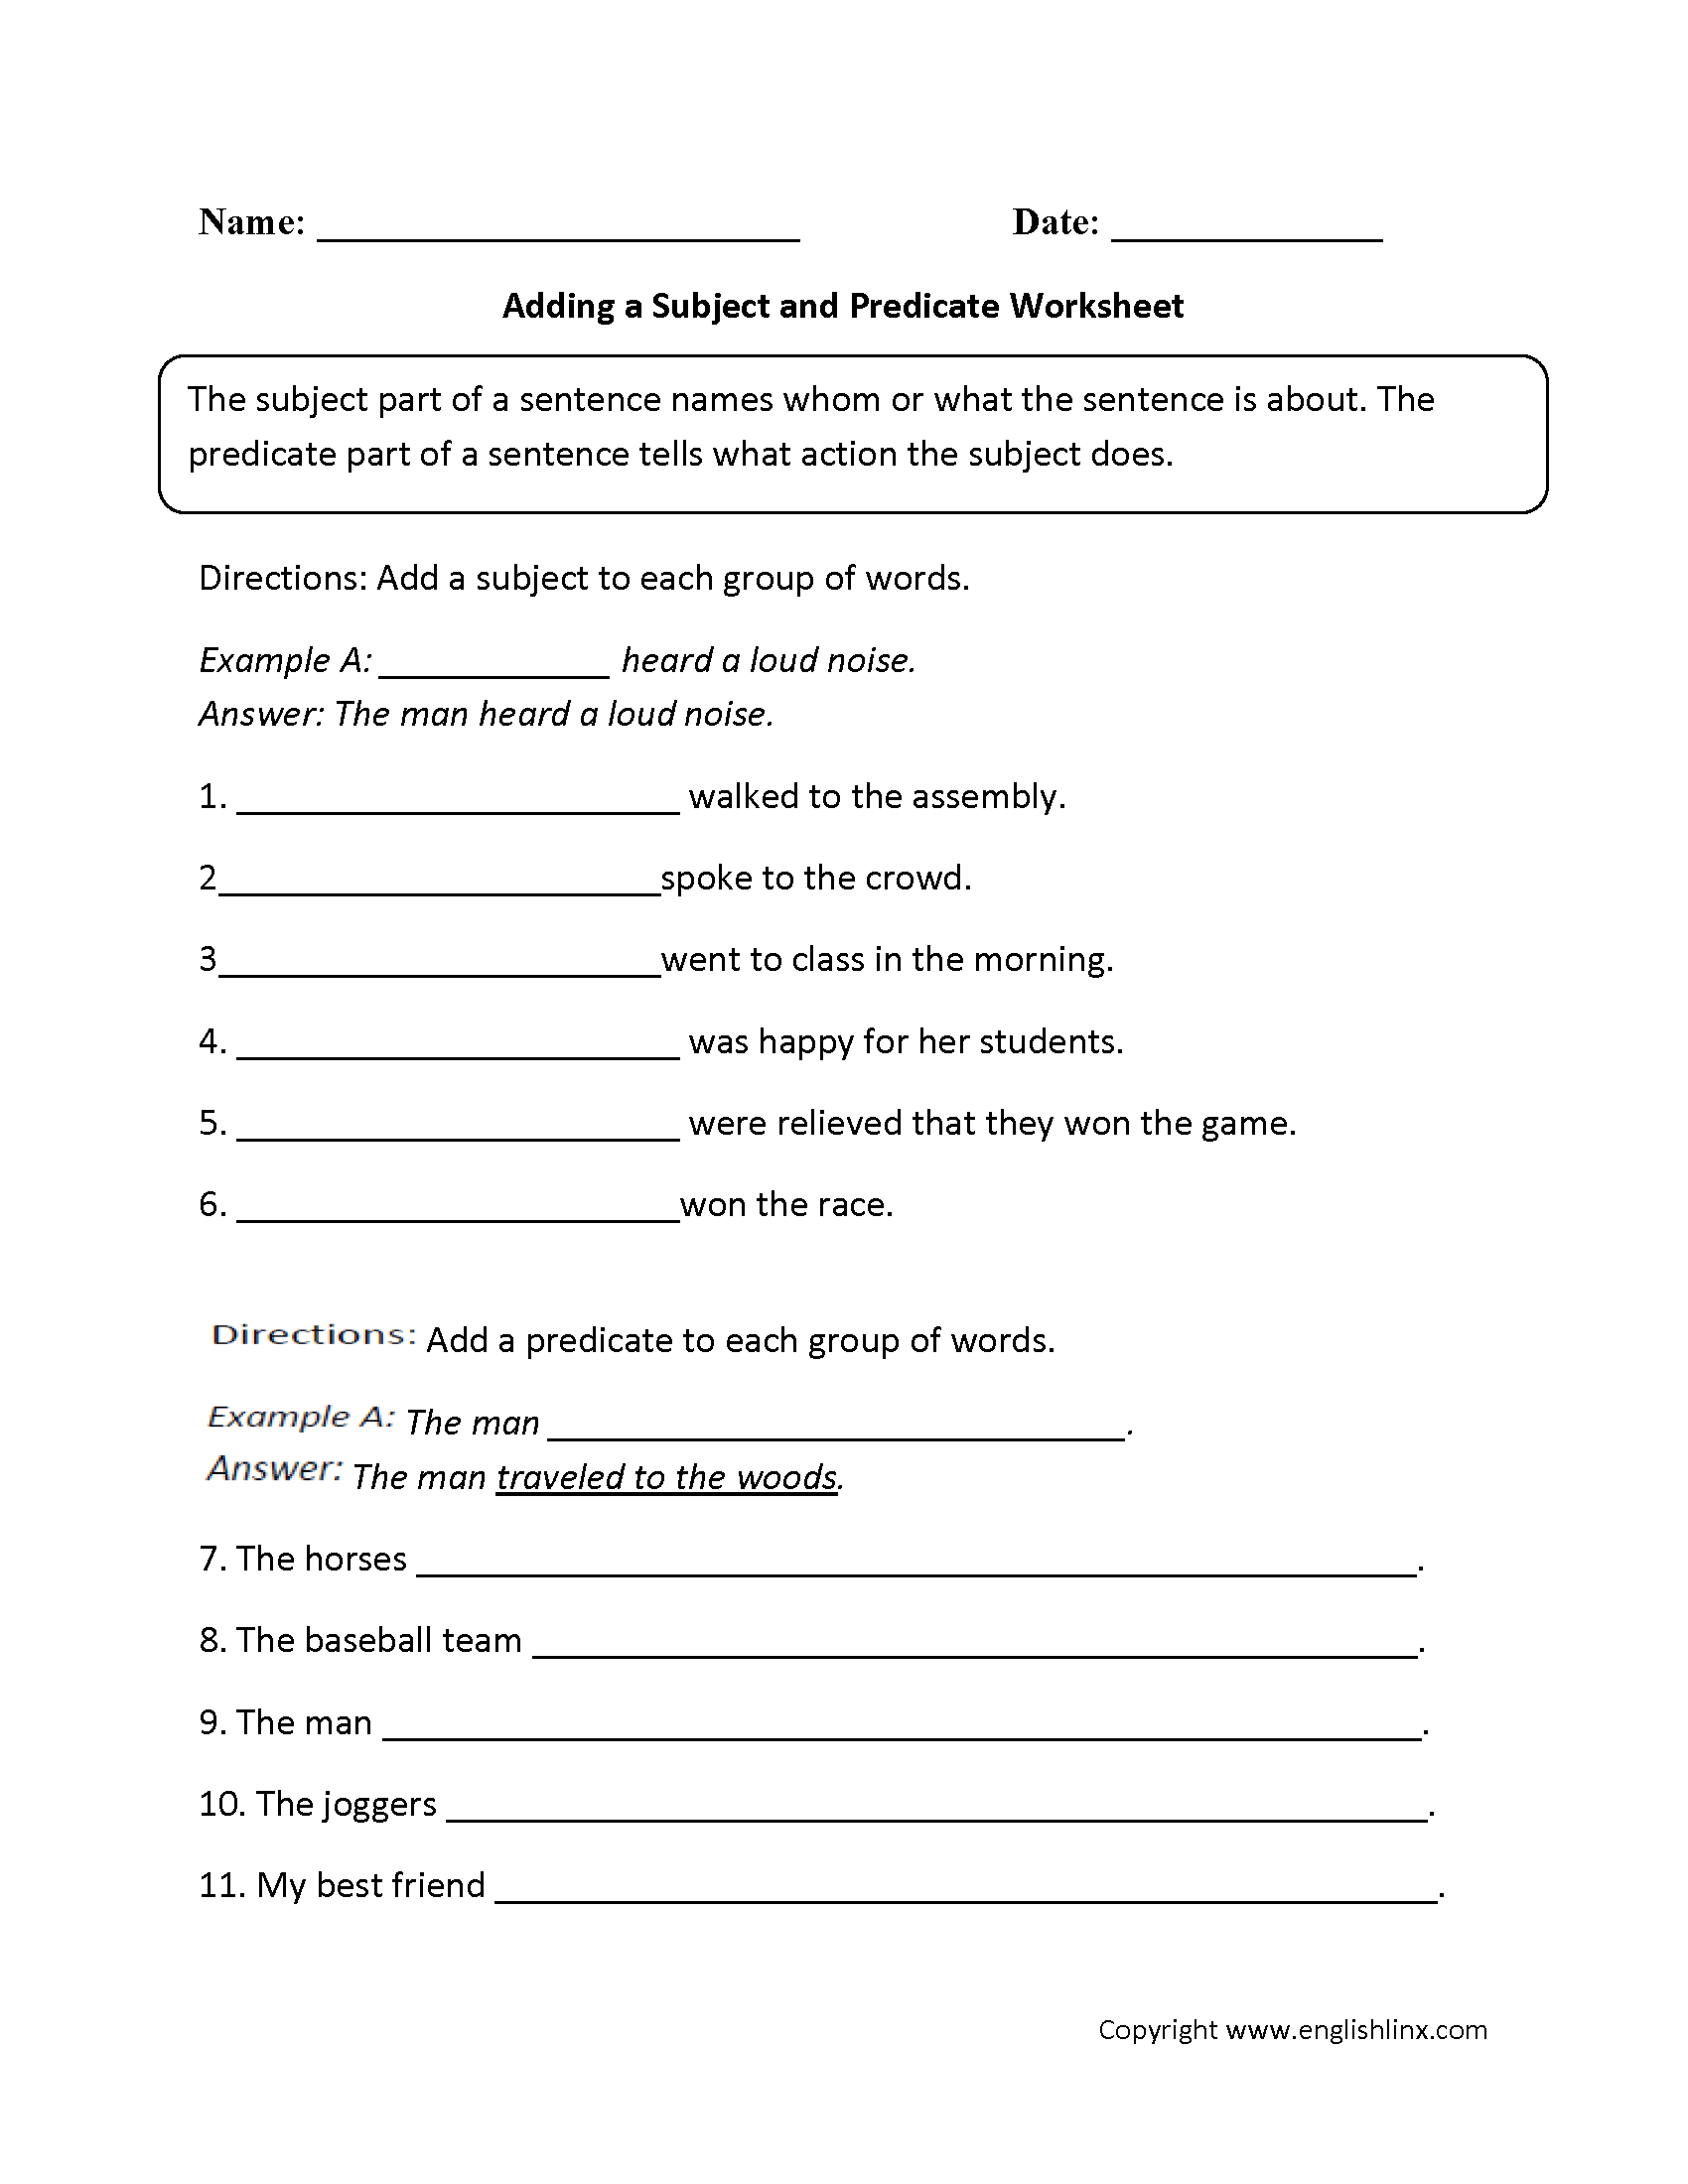 Worksheets Subject And Predicate Worksheets 5th Grade englishlinx com subject and predicate worksheets adding a subejct worksheet